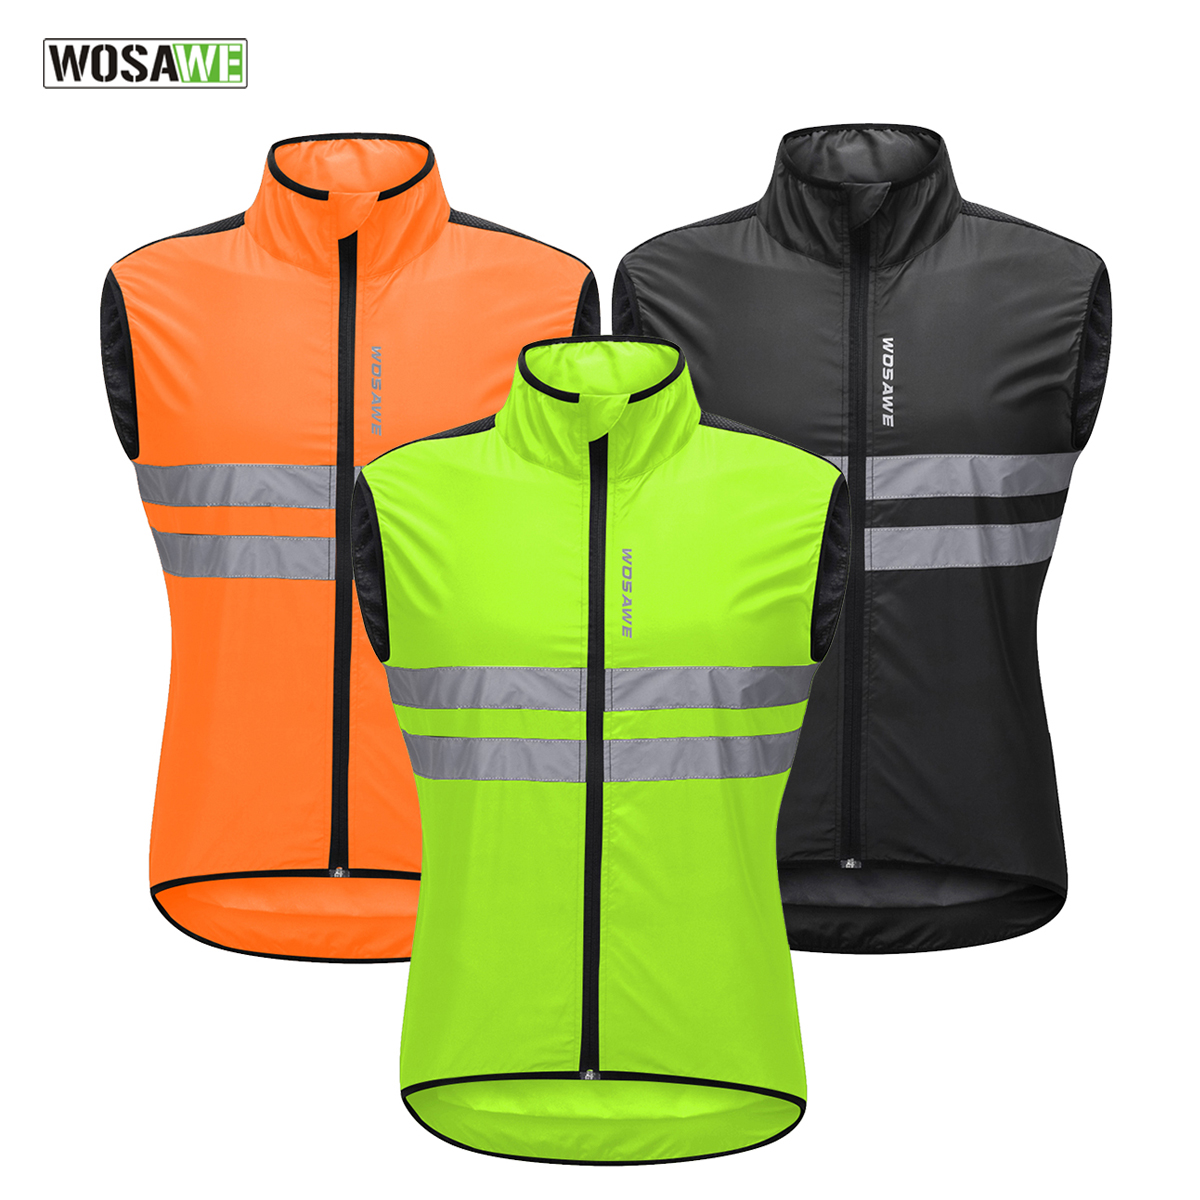 WOSAWE Cycling Vest High Visibility Reflective Safety Vest Night Running Riding Motorcycle Jacket Waistcoat Green /size M-3XL браслет из авантюрина классика